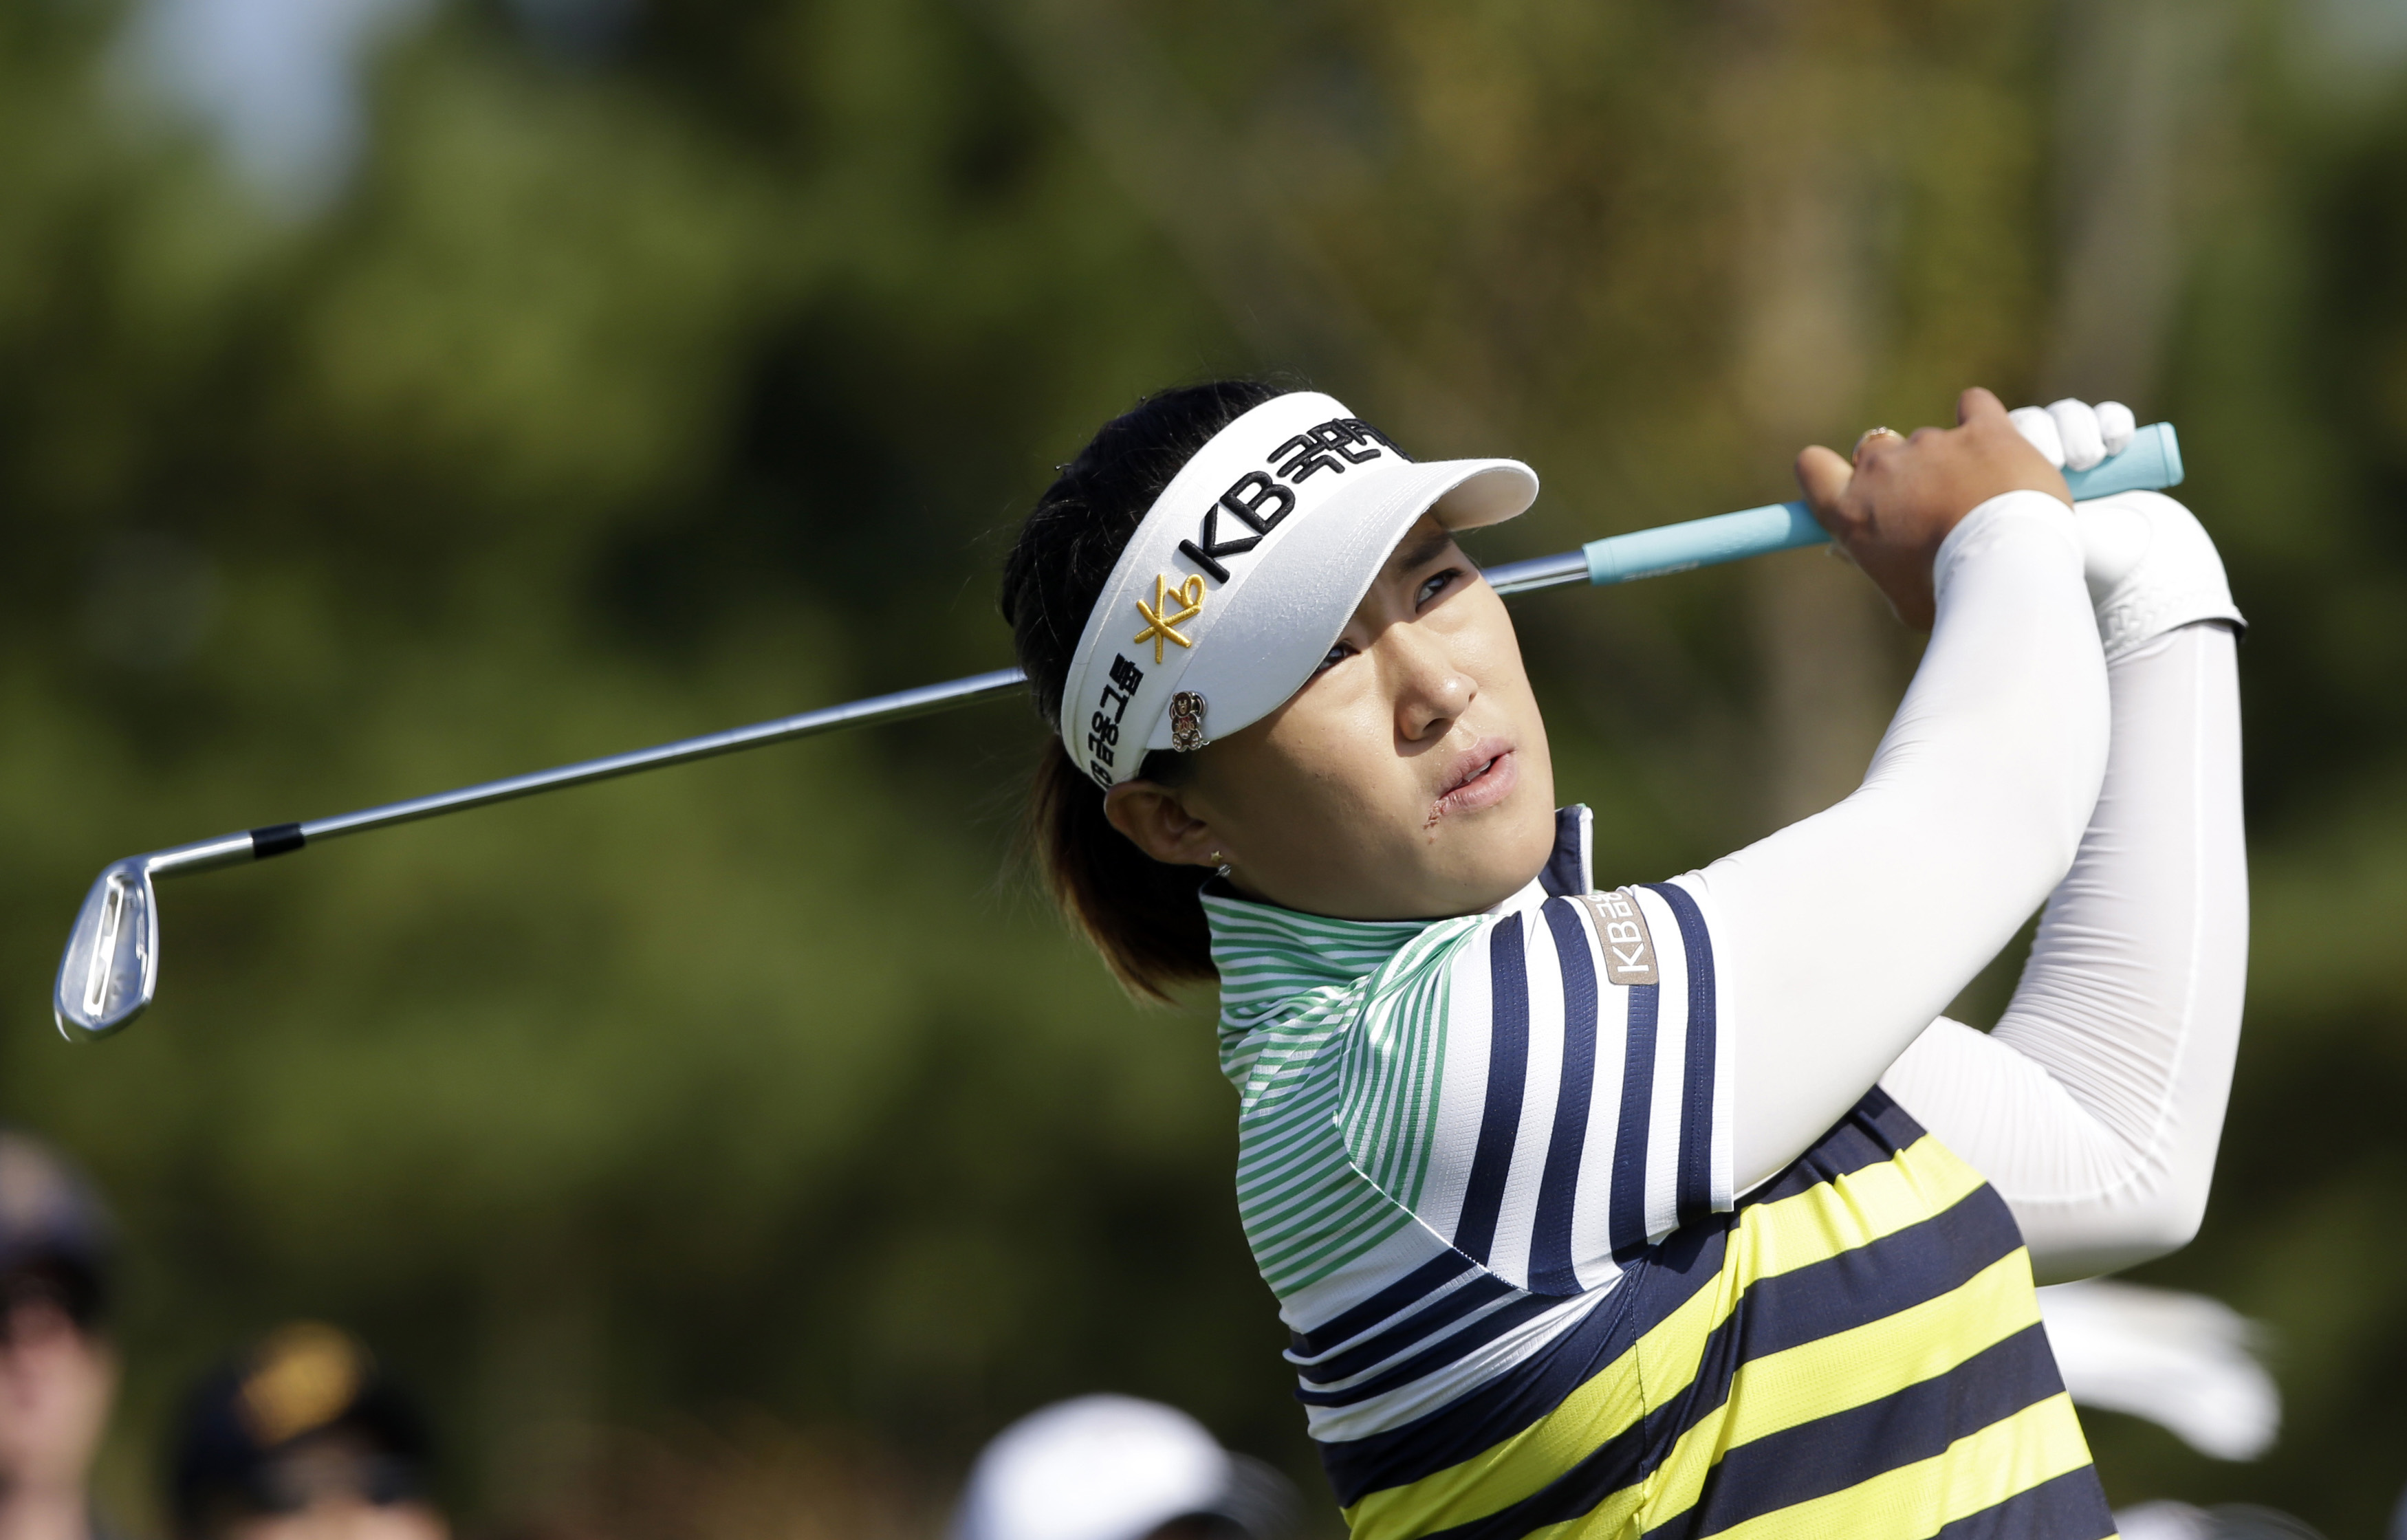 Amy Yang of South Korea watches her shot during the final round of the KEB Hana Bank Championship golf tournament at Sky72 Golf Club in Incheon, west of Seoul, South Korea, Sunday, Oct. 20, 2013